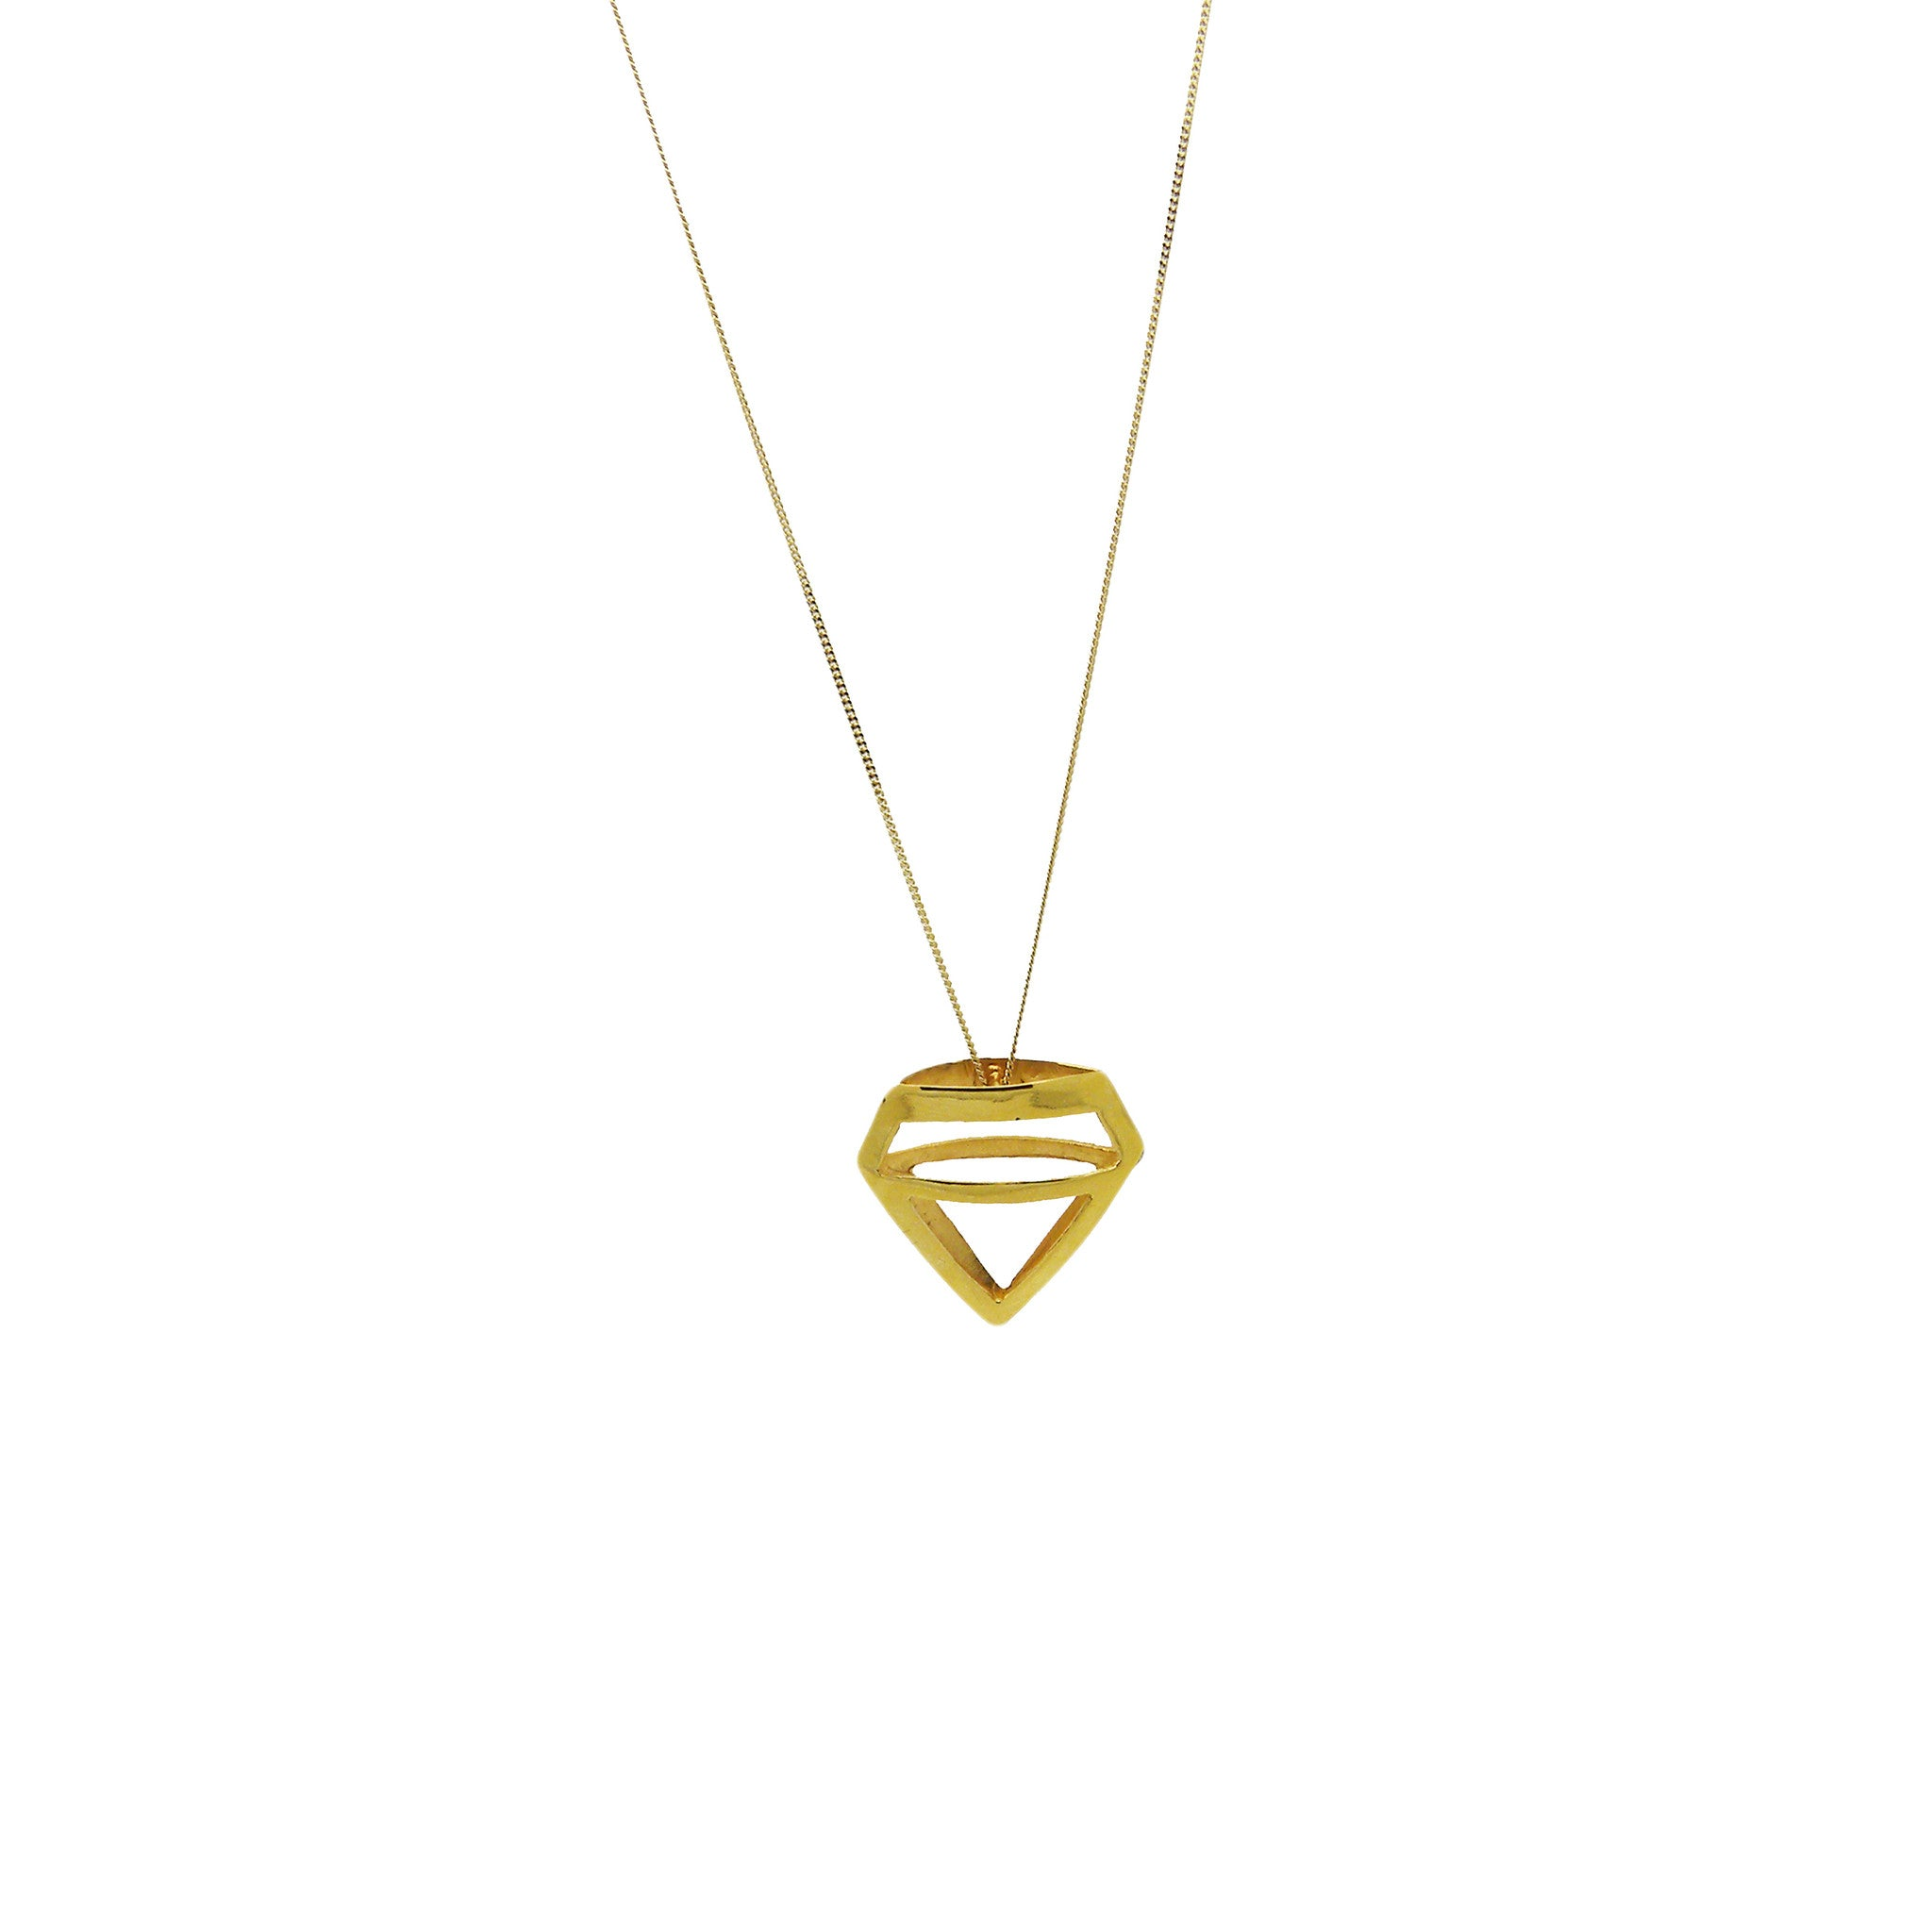 Coco\'s Liberty: The supergirl necklace | Jewelry -  Hiphunters Shop